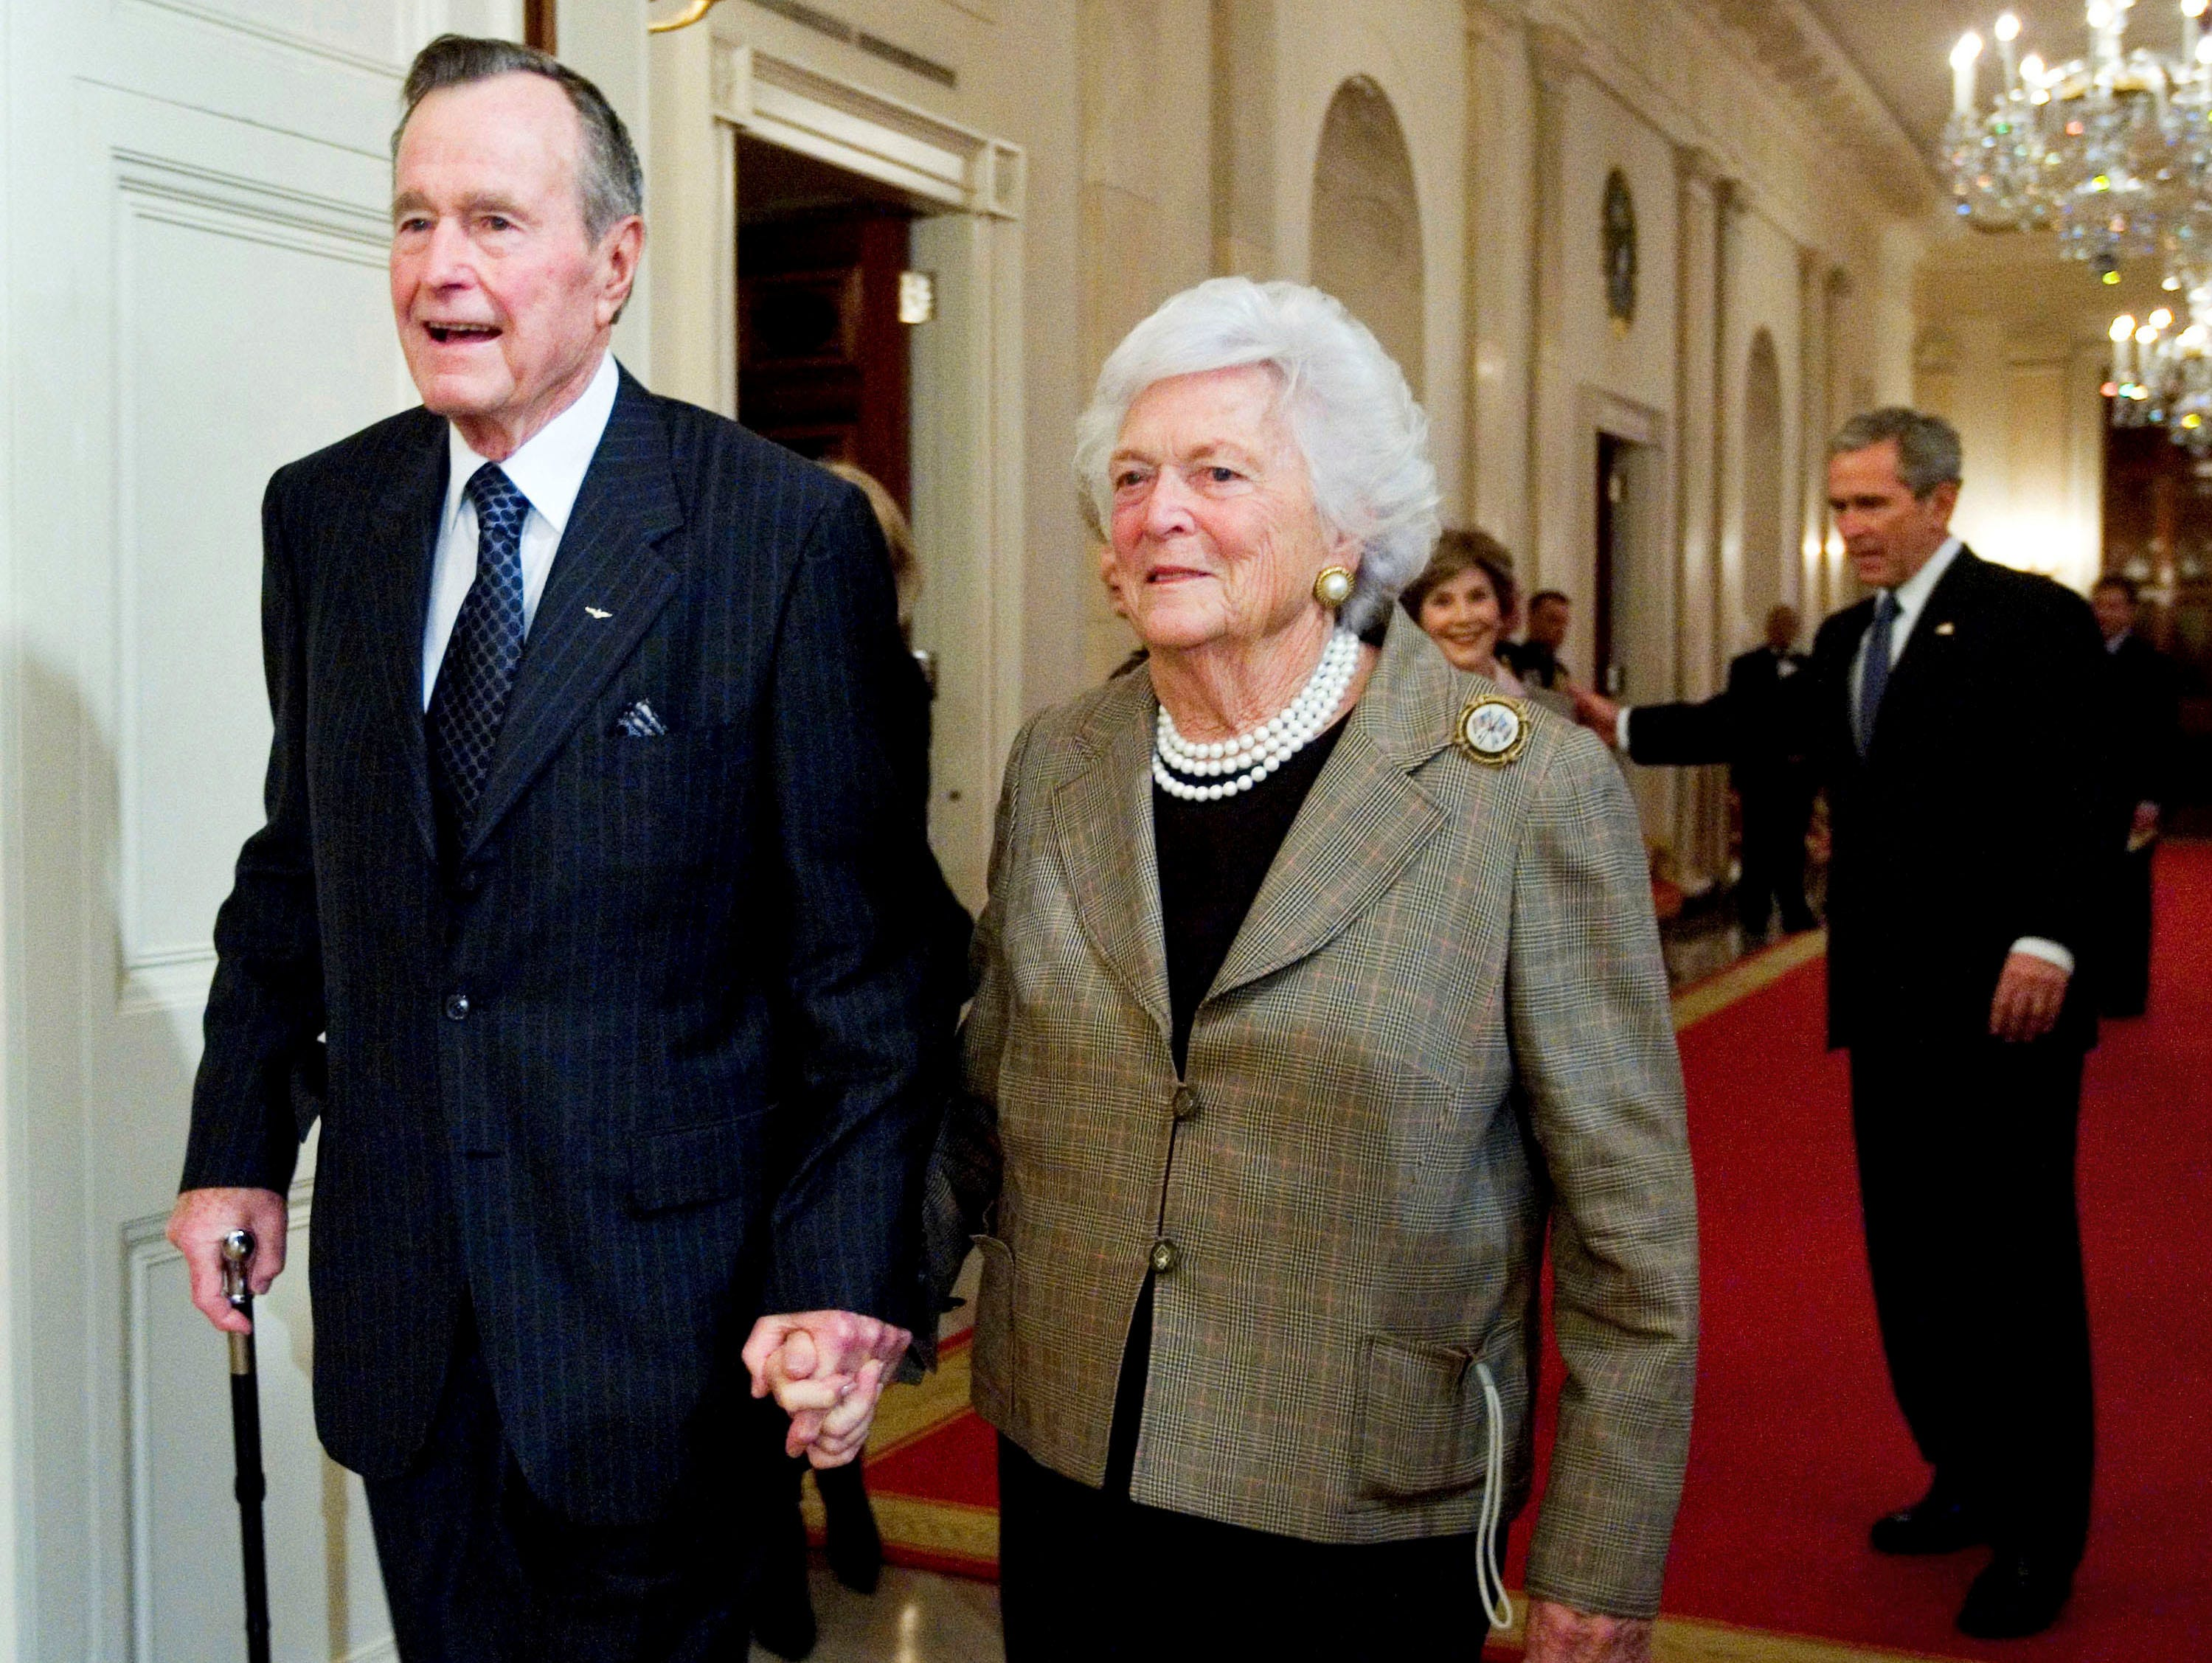 Former President George H. W. Bush, left, walks with his wife, former first lady Barbara Bush, followed by their son, President George W. Bush, and his wife first lady Laura Bush, to a Jan. 7, 2009 reception in honor of the Points of Light Institute, in the East Room at the White House in Washington.